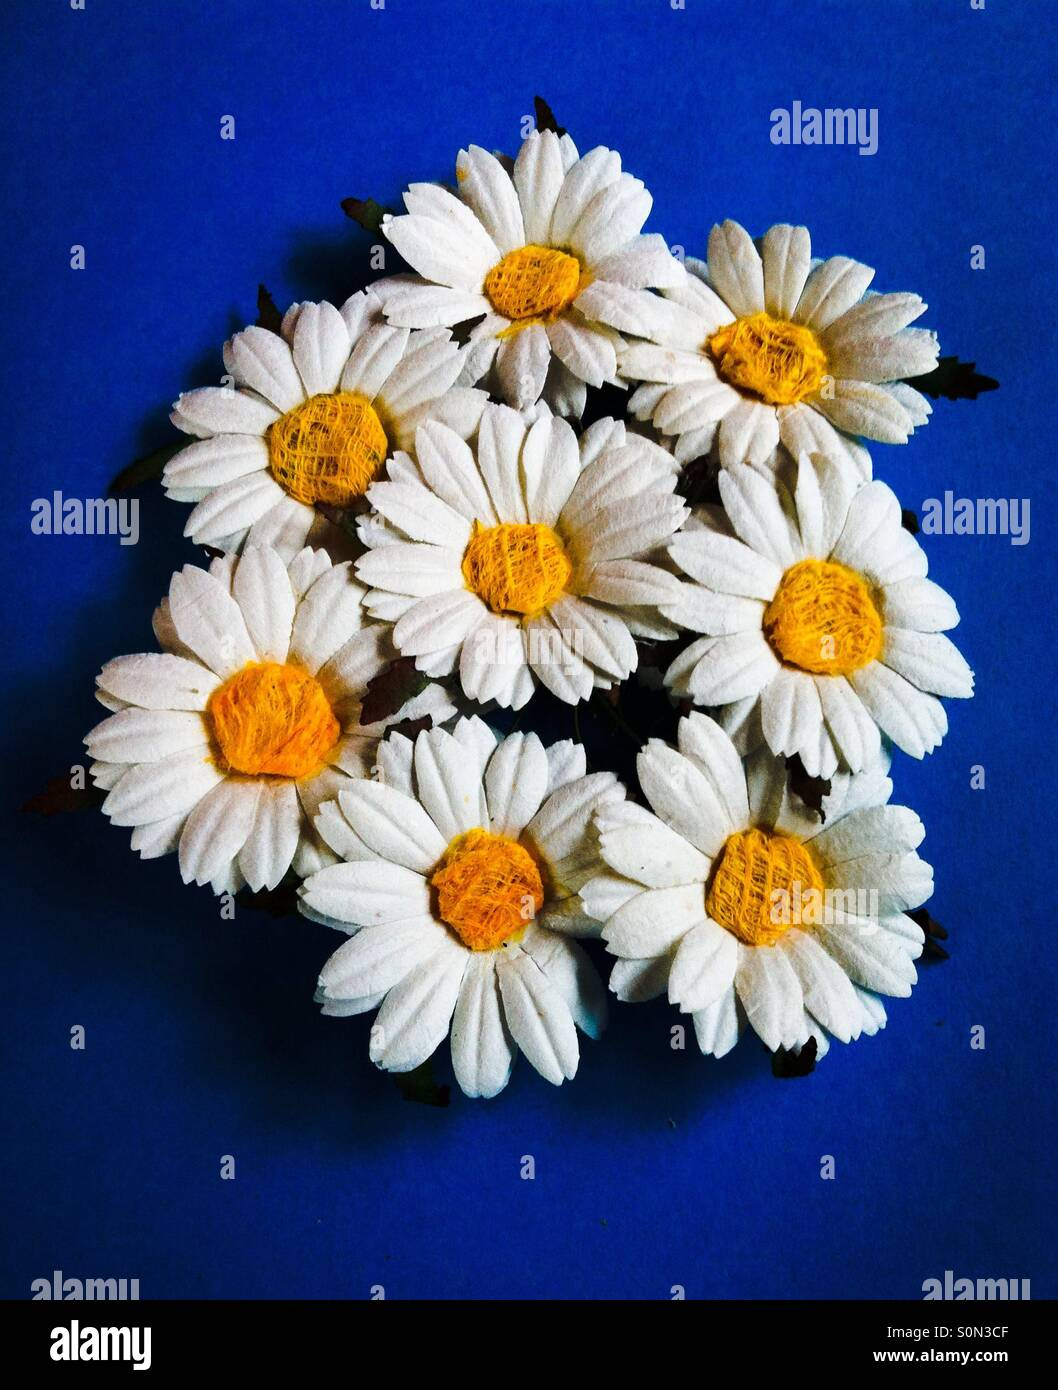 Paper daisies - Stock Image